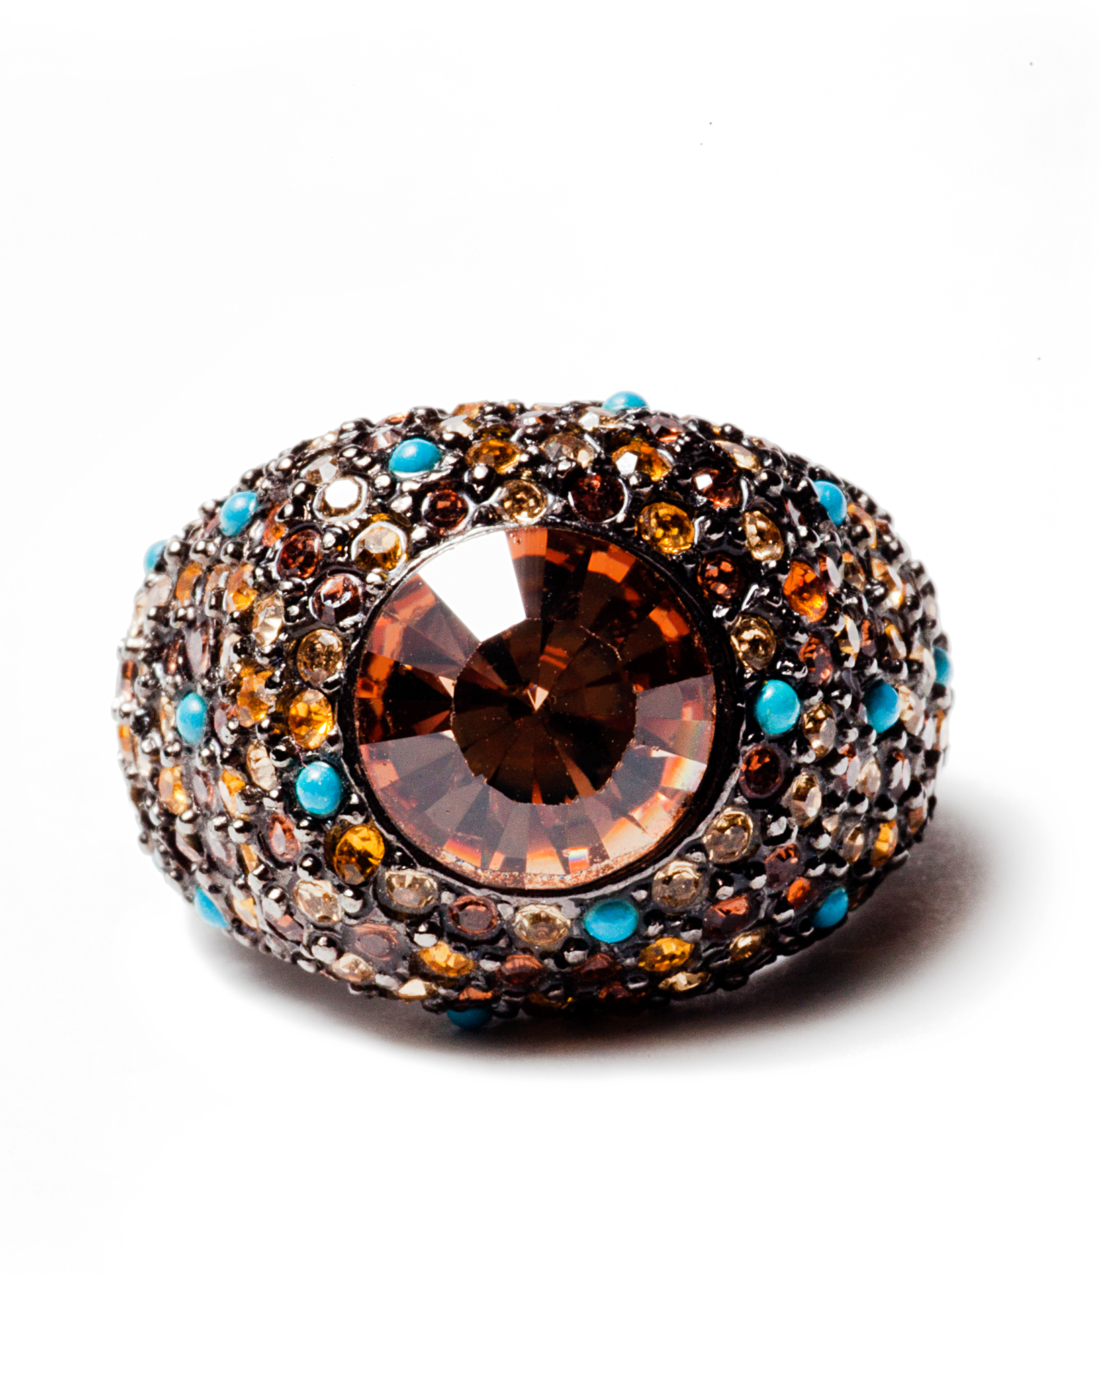 Topaz and Turquoise Pave Crystal Encrusted Gunmetal Cocktail Ring, circa 1960's